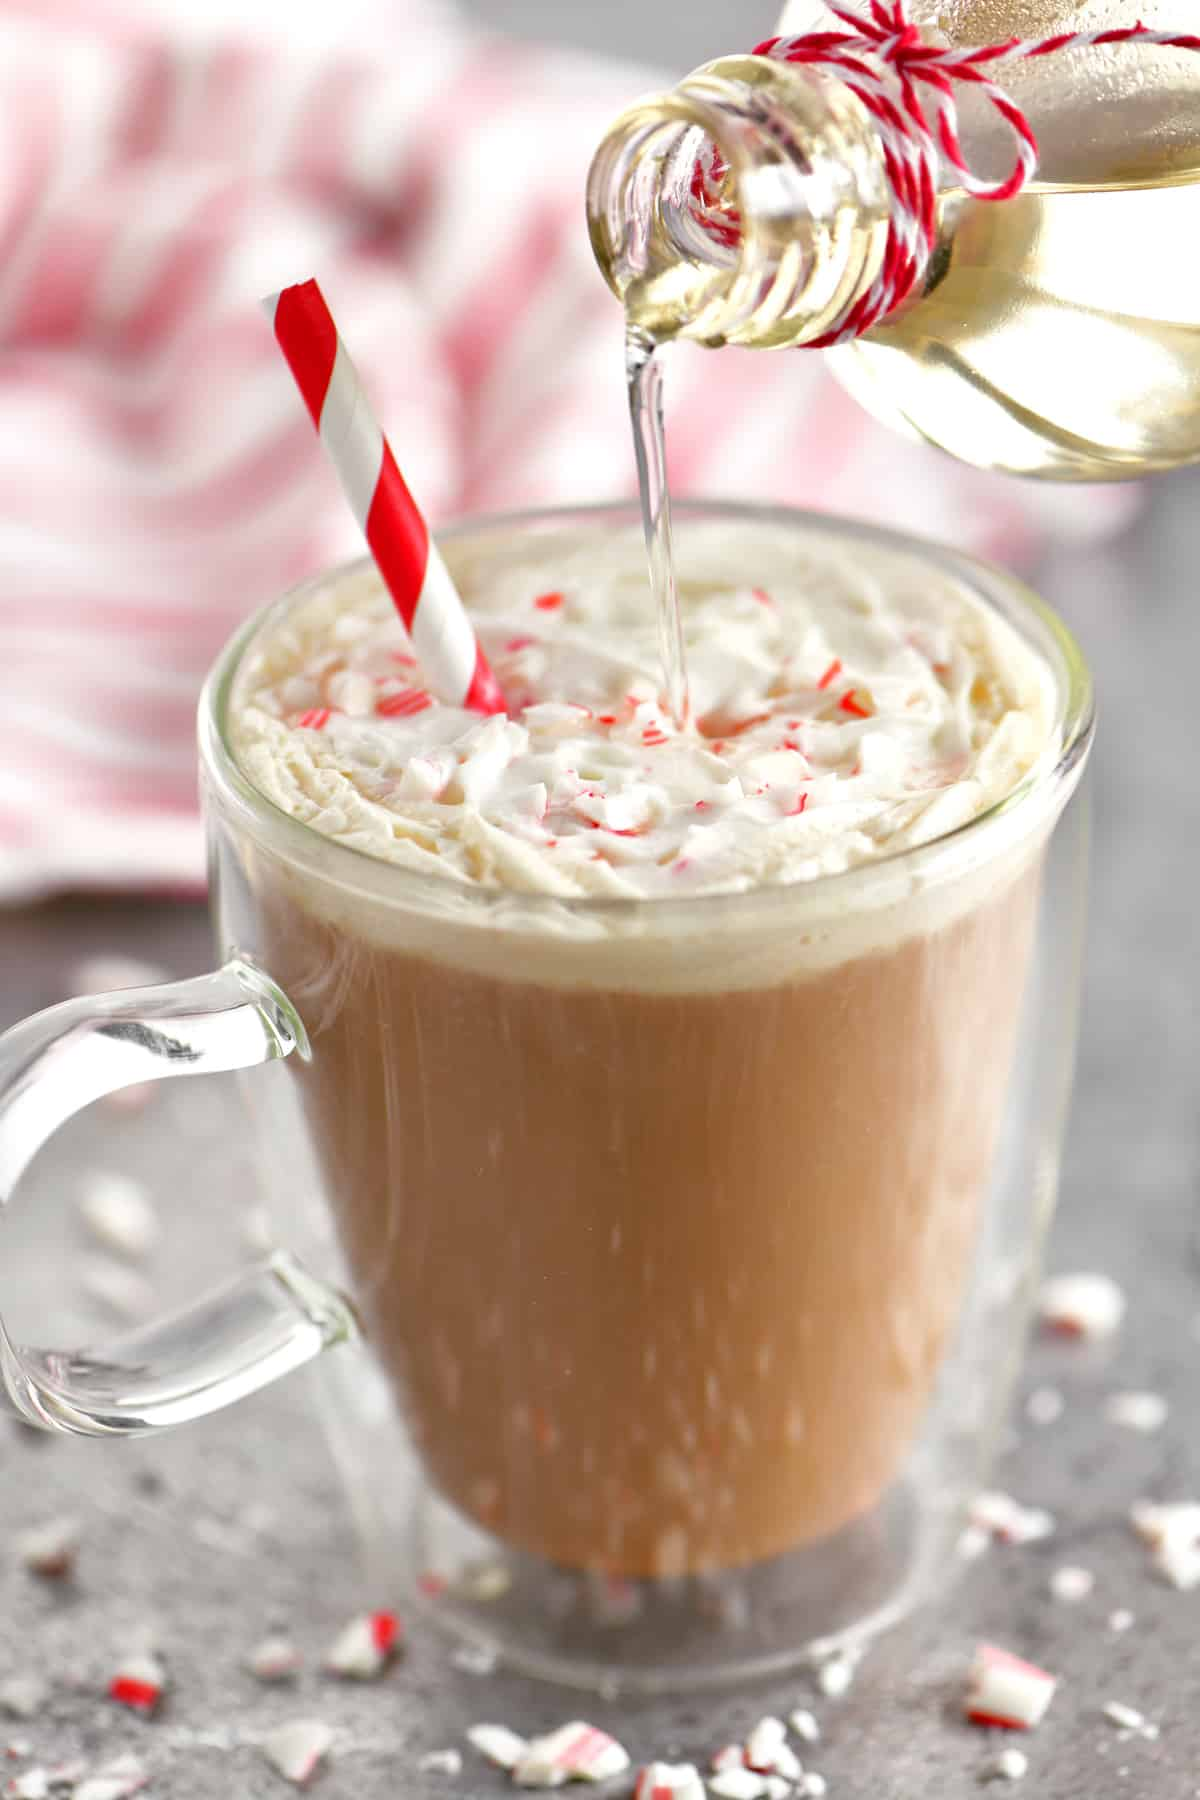 pouring the peppermint syrup into the whipped mocha drink